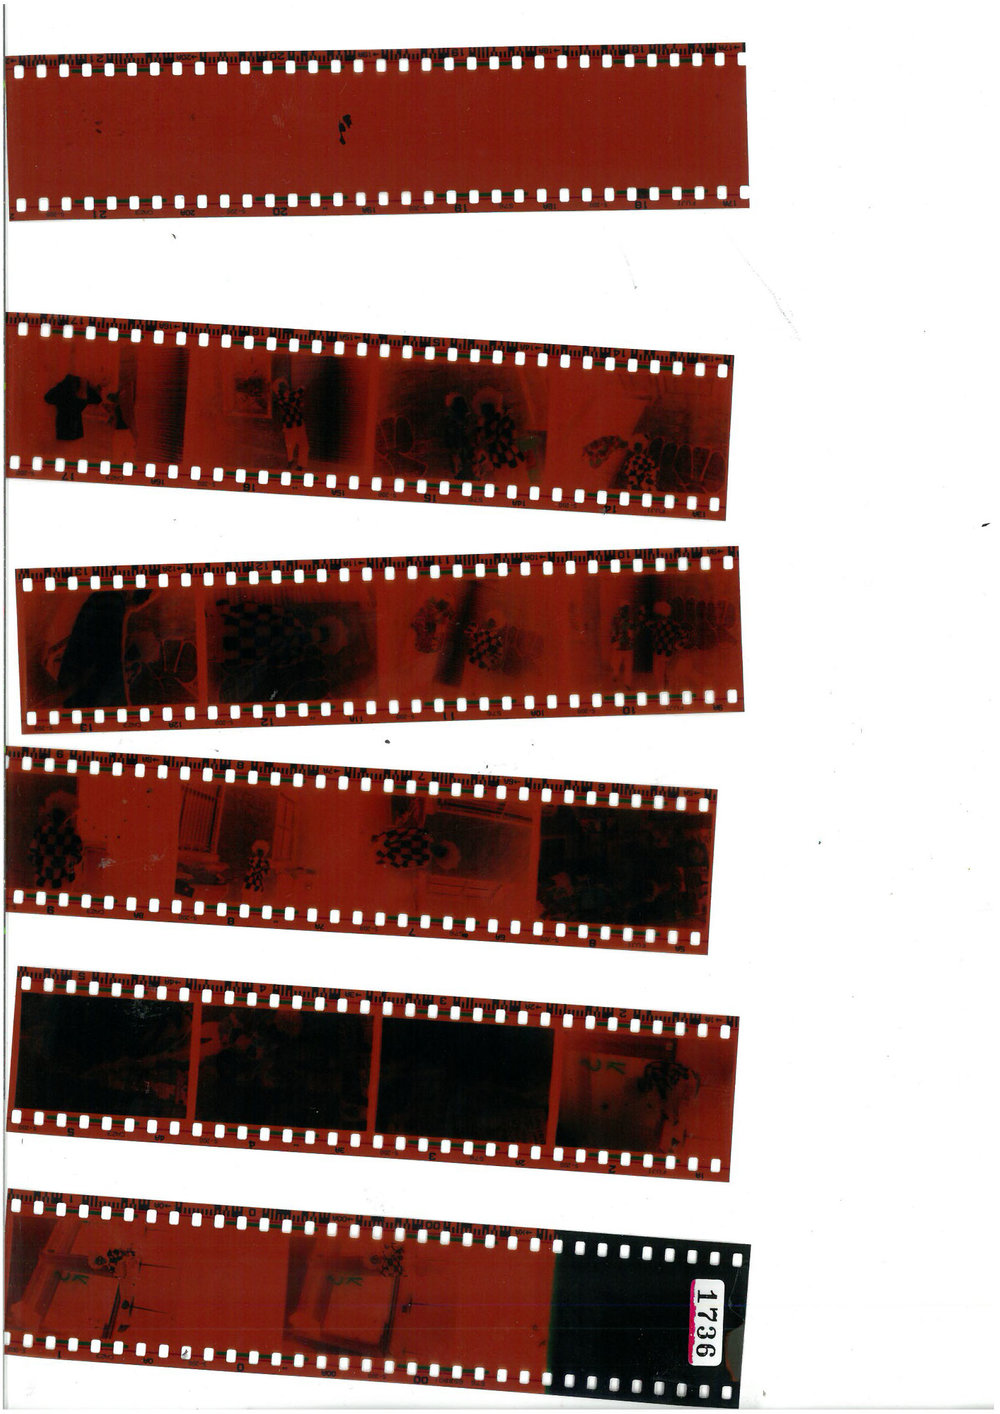 film strip.jpg